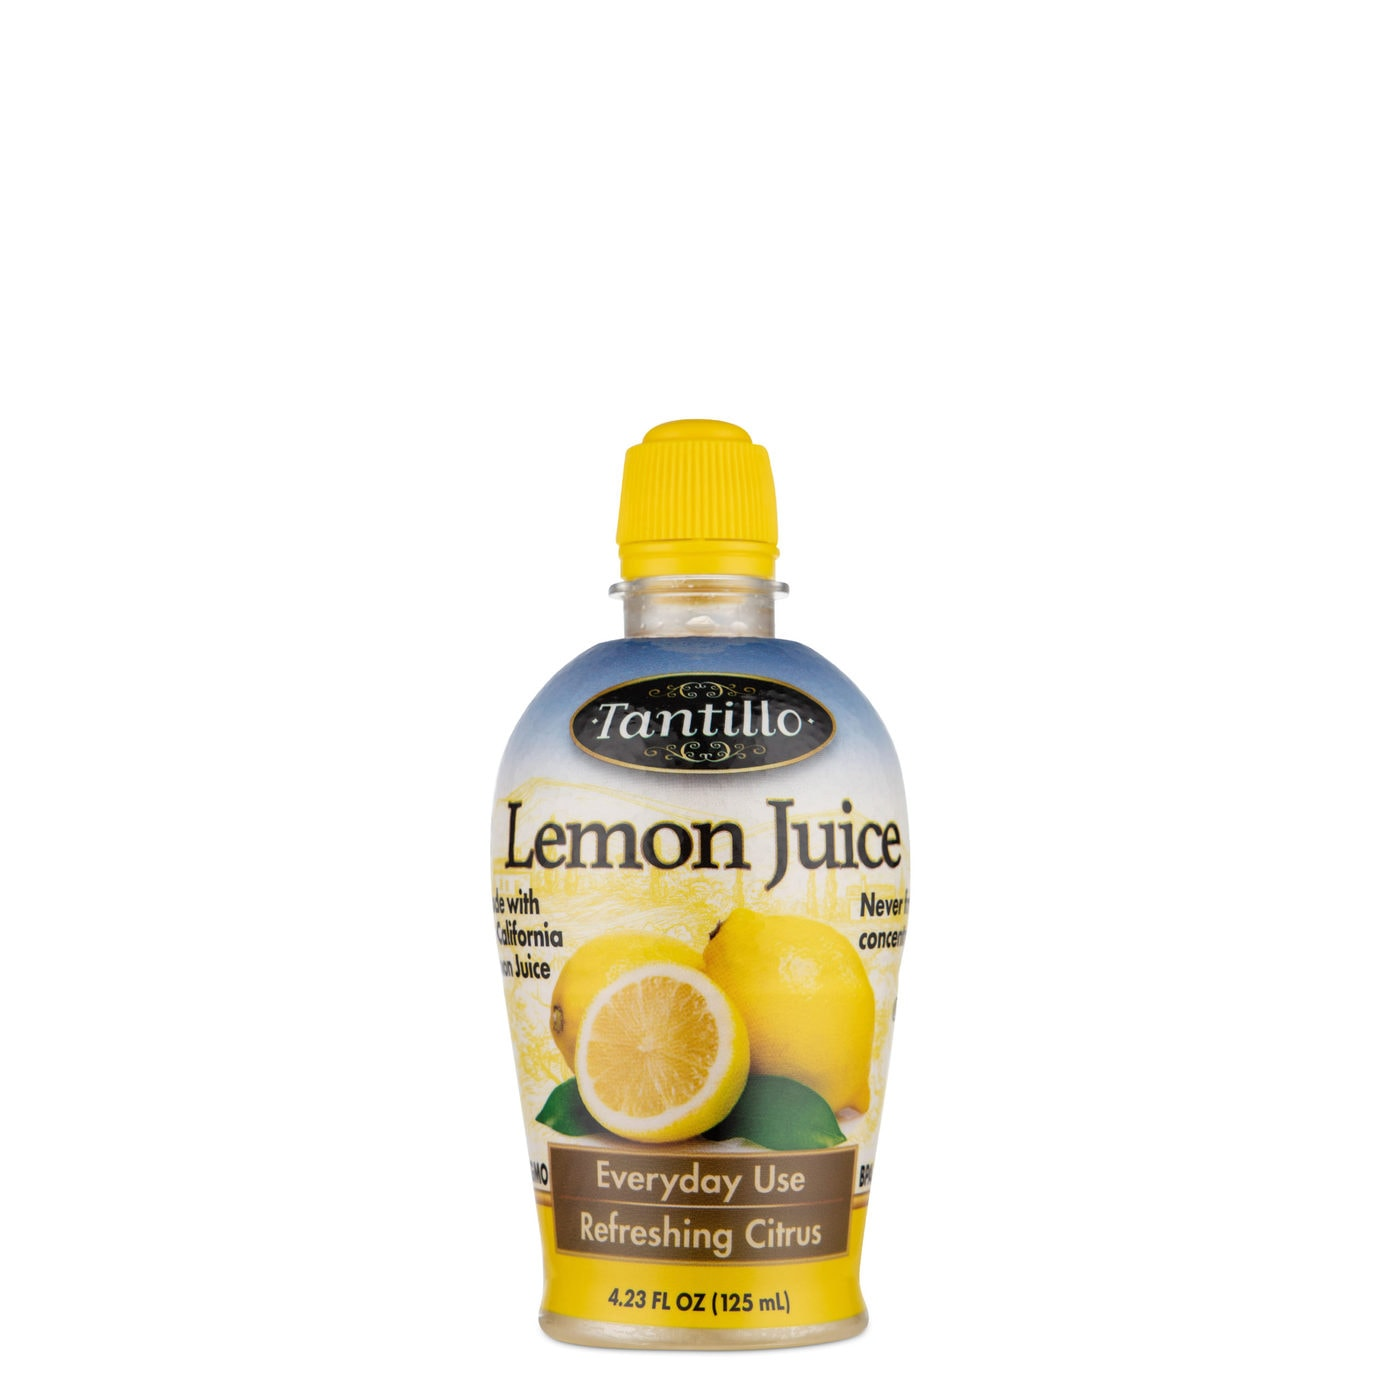 Tantillo California Lemon Juice 4.23 fl oz